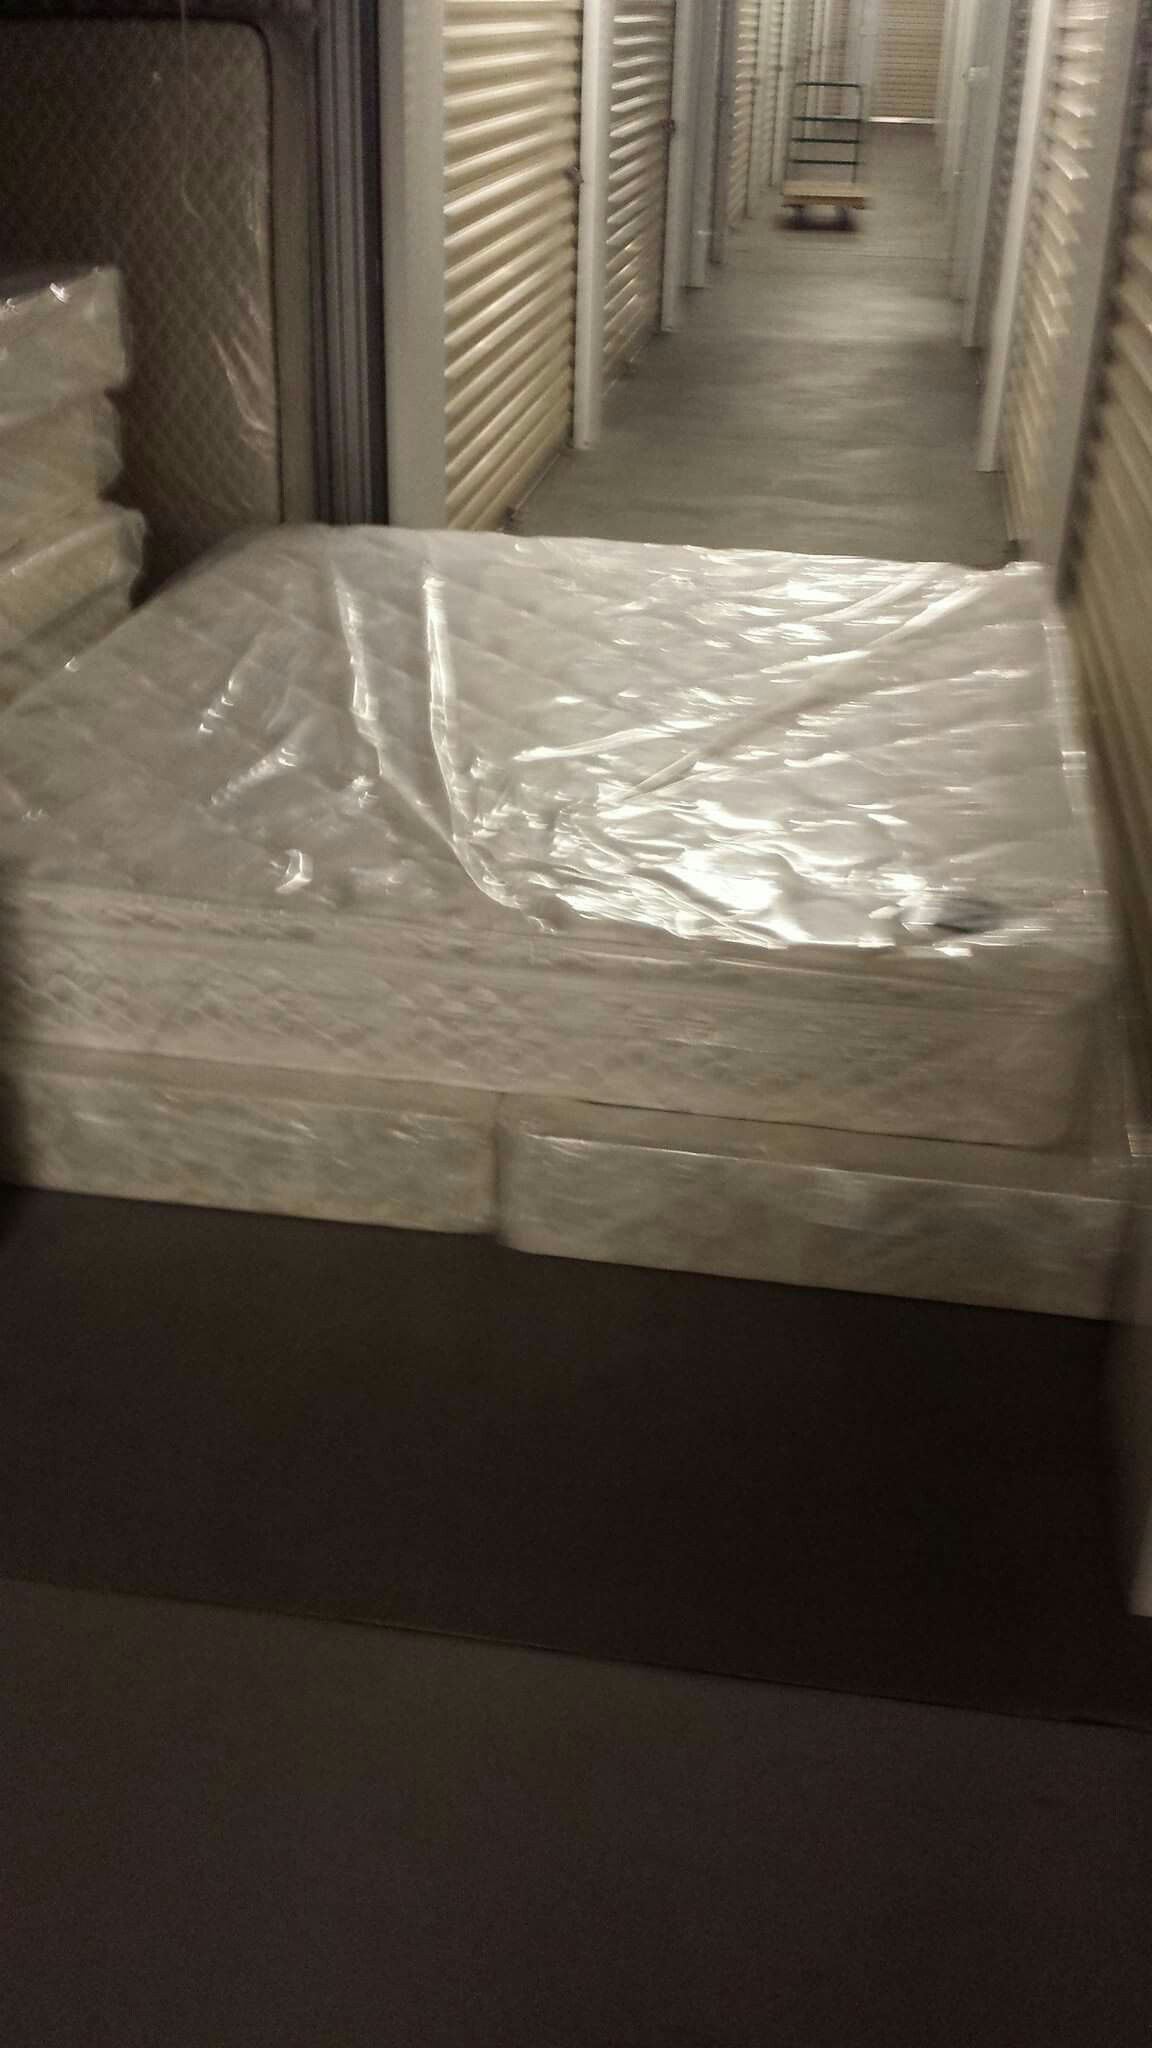 New In Plastic Ca King Ortho Back Ease Pillow Top Mattress